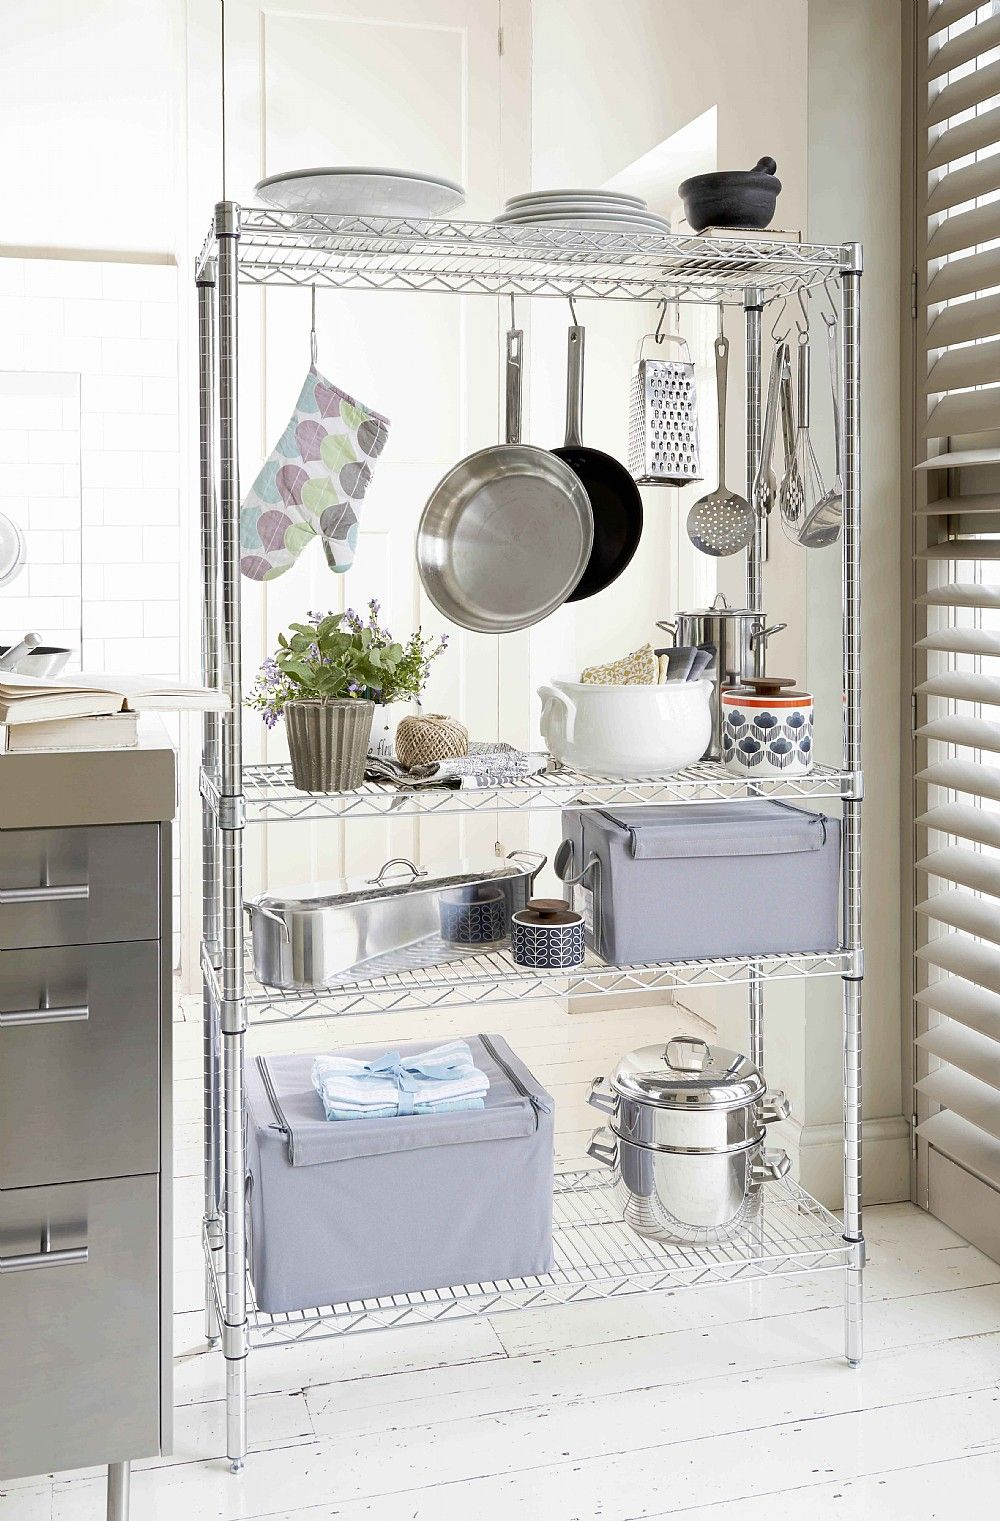 Chrome Kitchen Rack Accessorize with hooks to hang pans